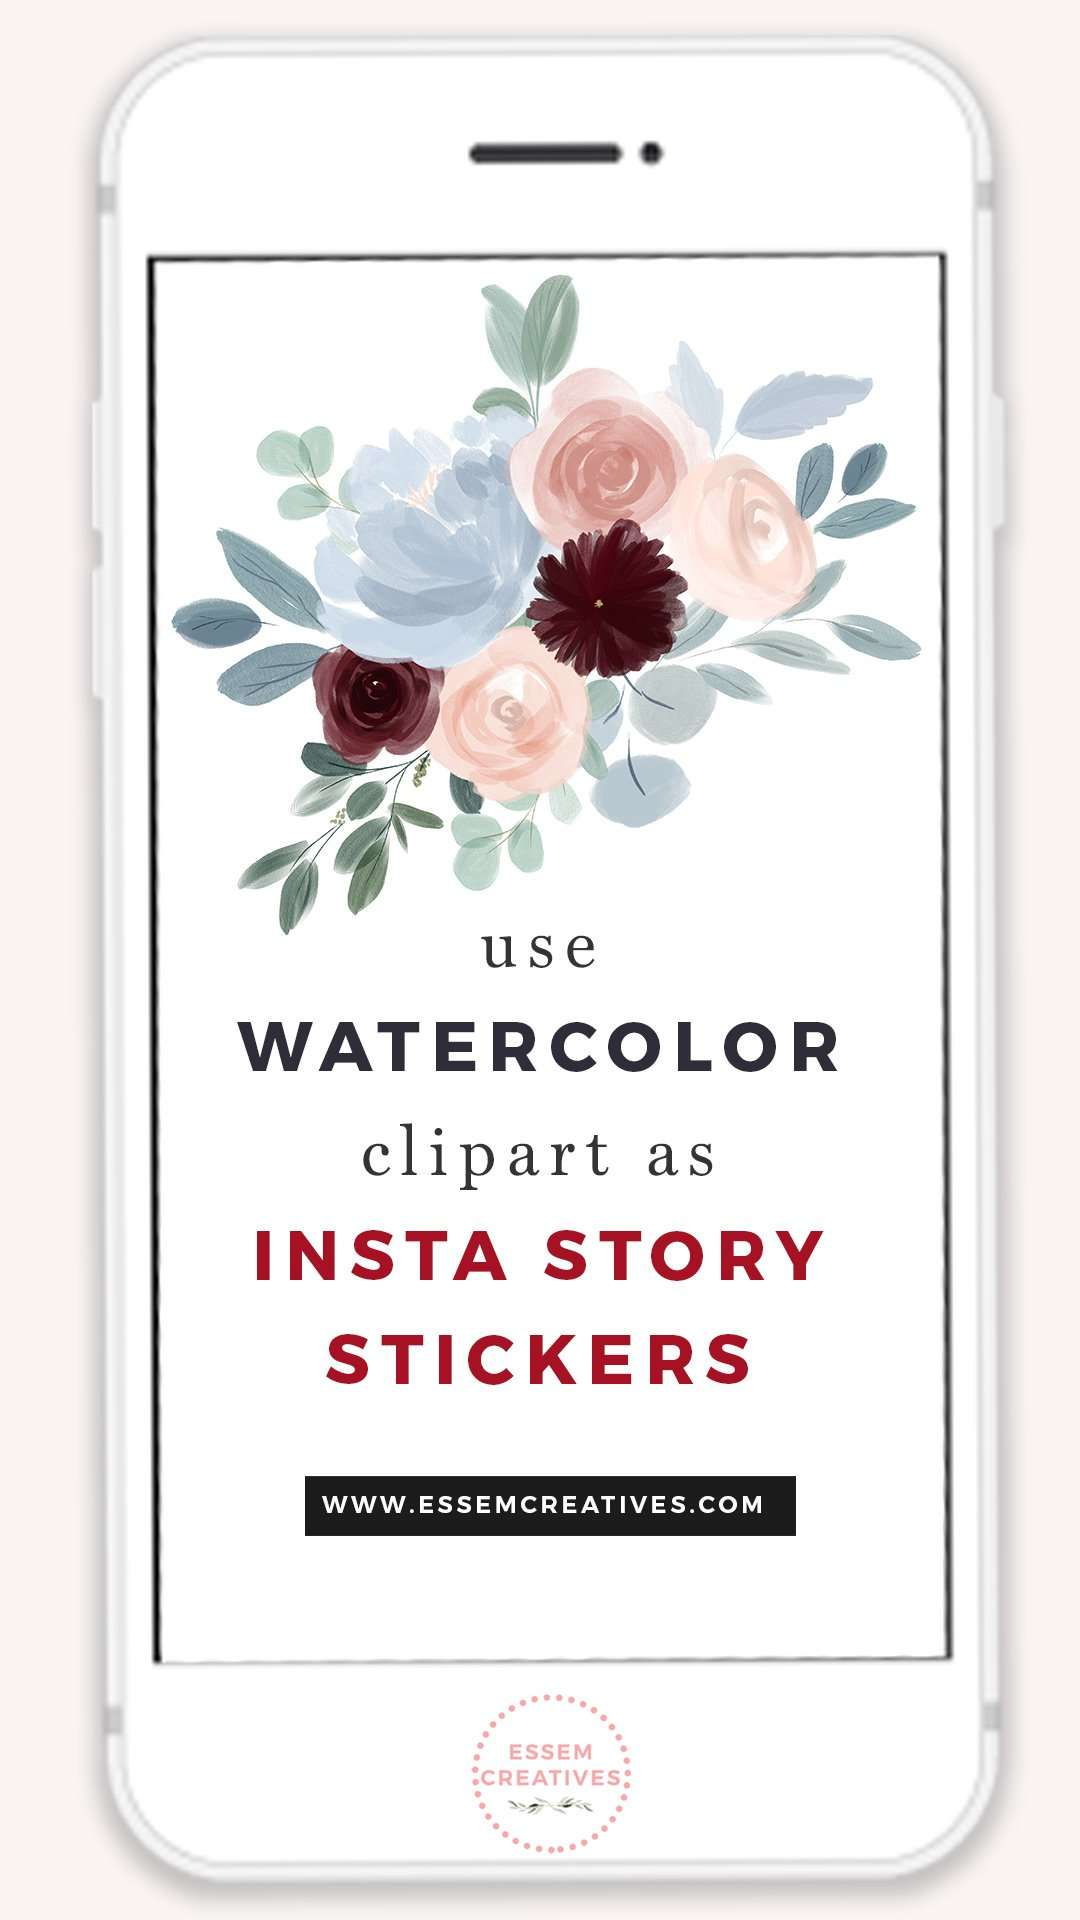 How to Use Watercolor Clipart Graphics as Stickers on Instagram Story | Want to quickly & easily add super cute graphics as stickers to decorate your Instagram Stories? I'll tell you how to do that in this video tutorial! Click to see more>>